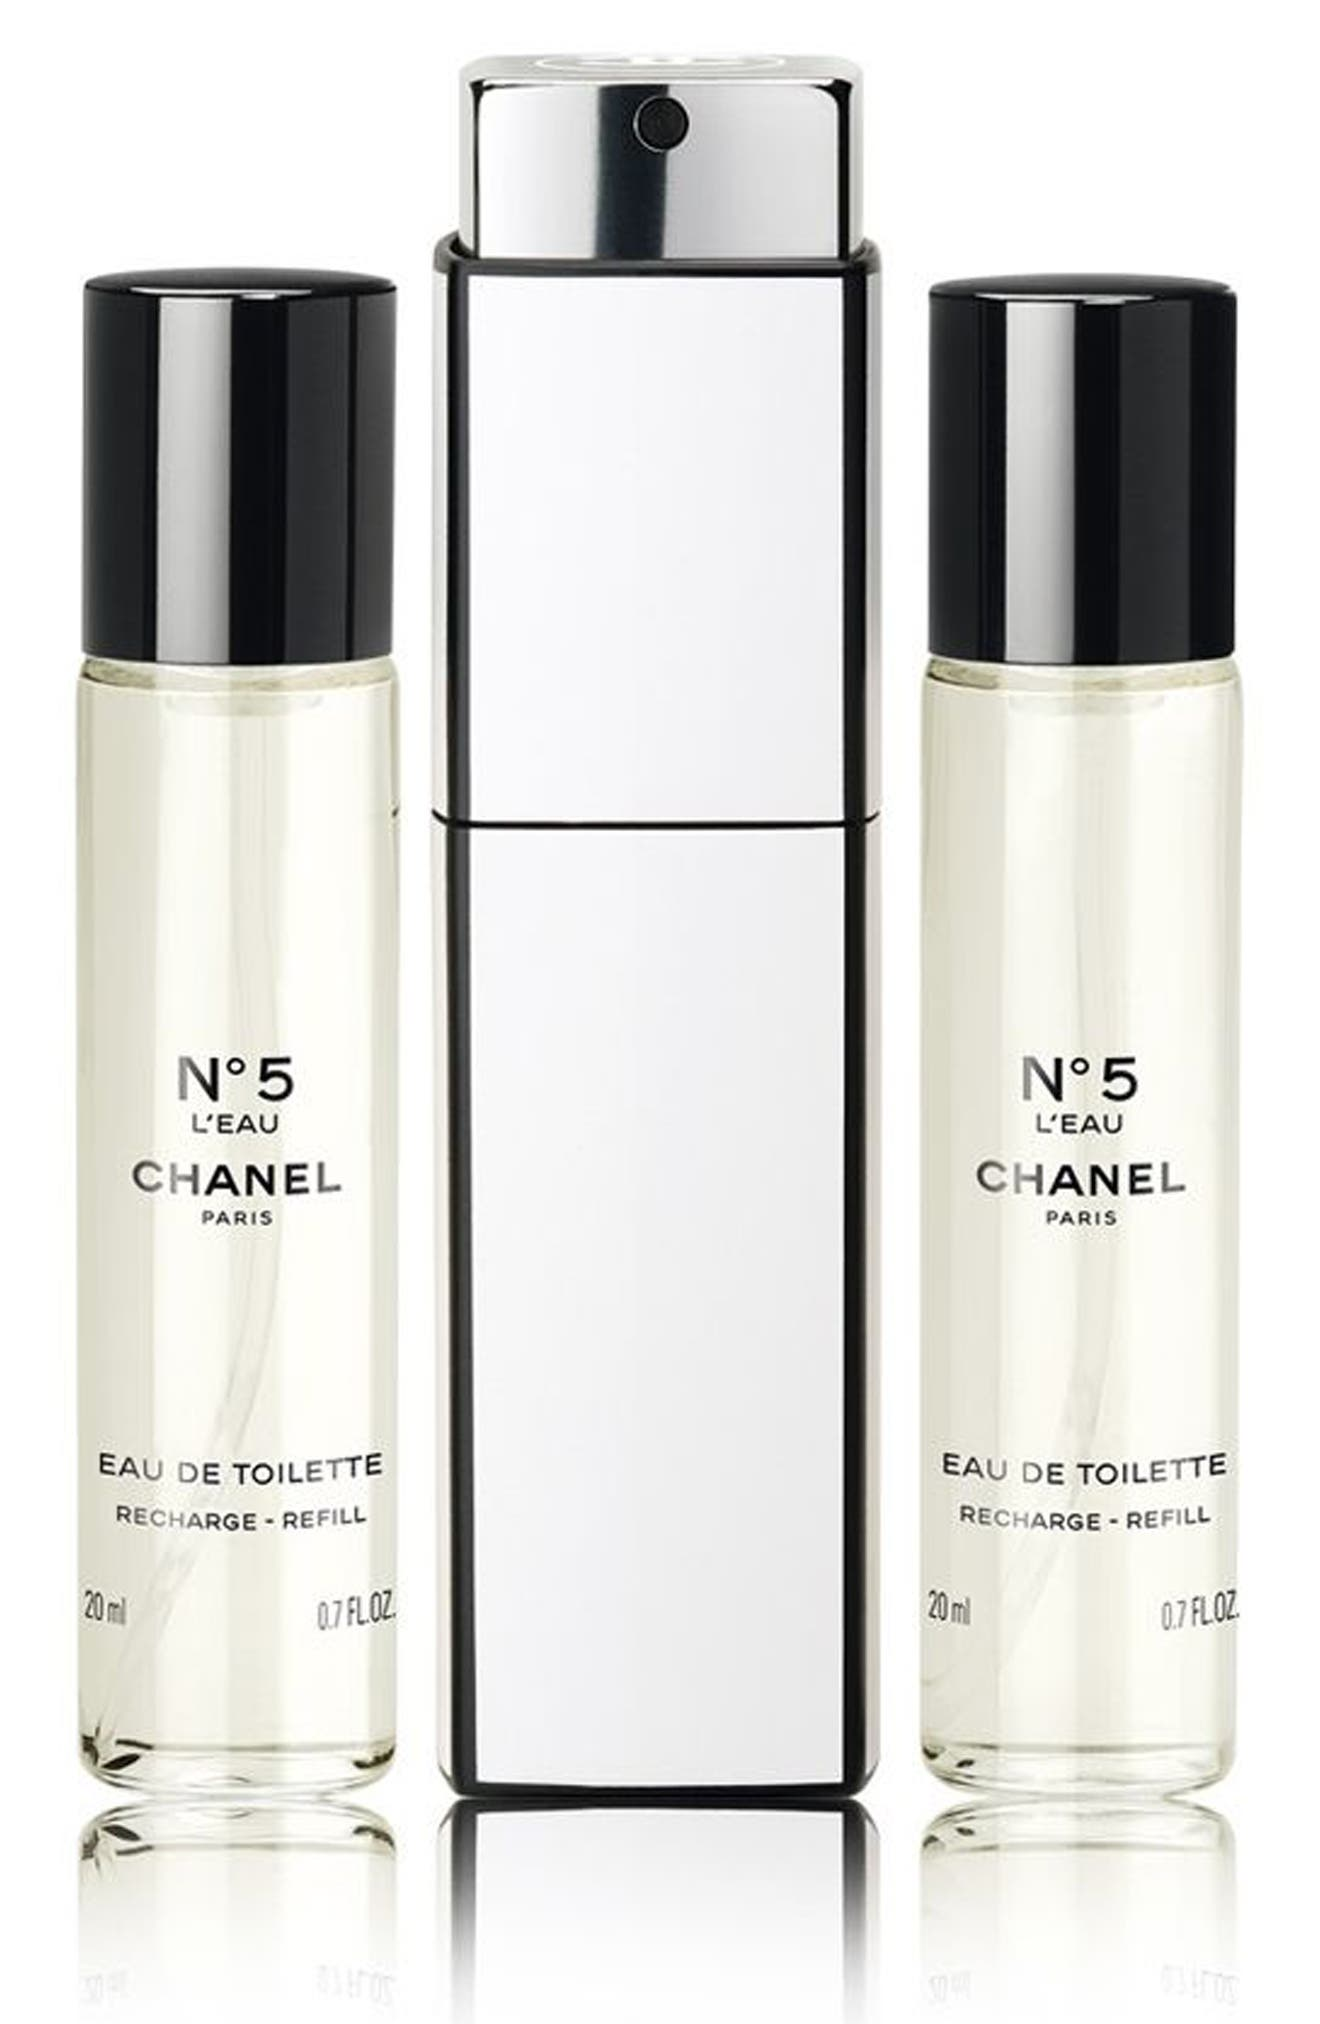 CHANEL N°5 L'EAU Eau de Toilette Twist and Spray Set